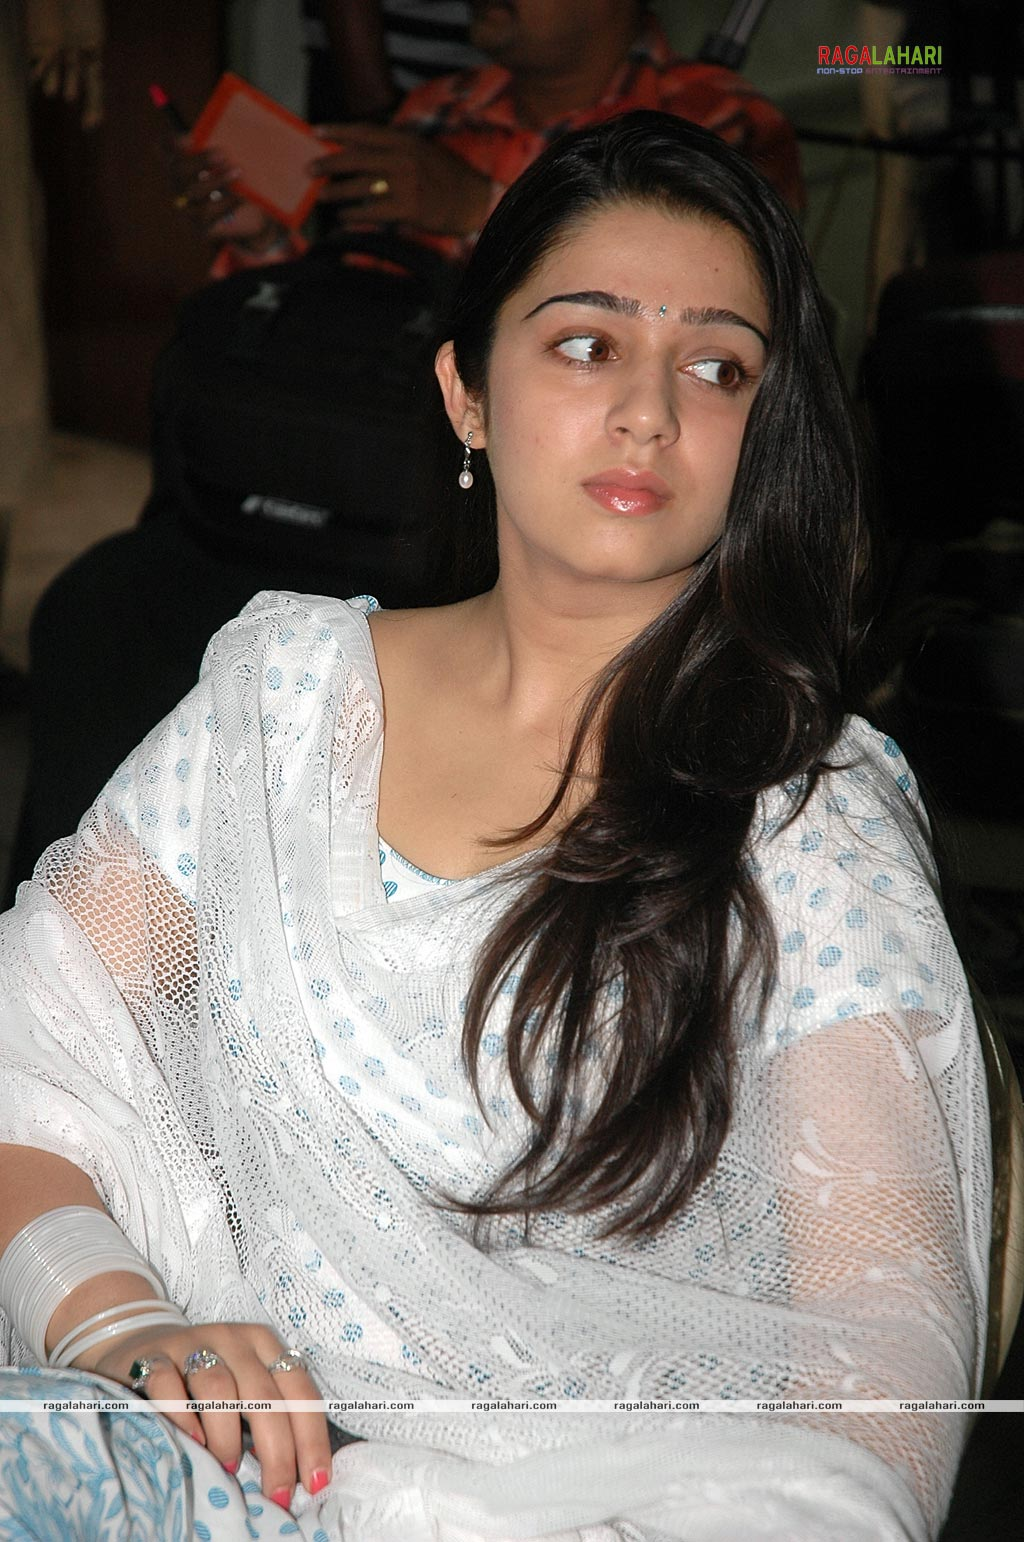 charmi hot sexy in white chudidaar photos of solo teen girls teasing